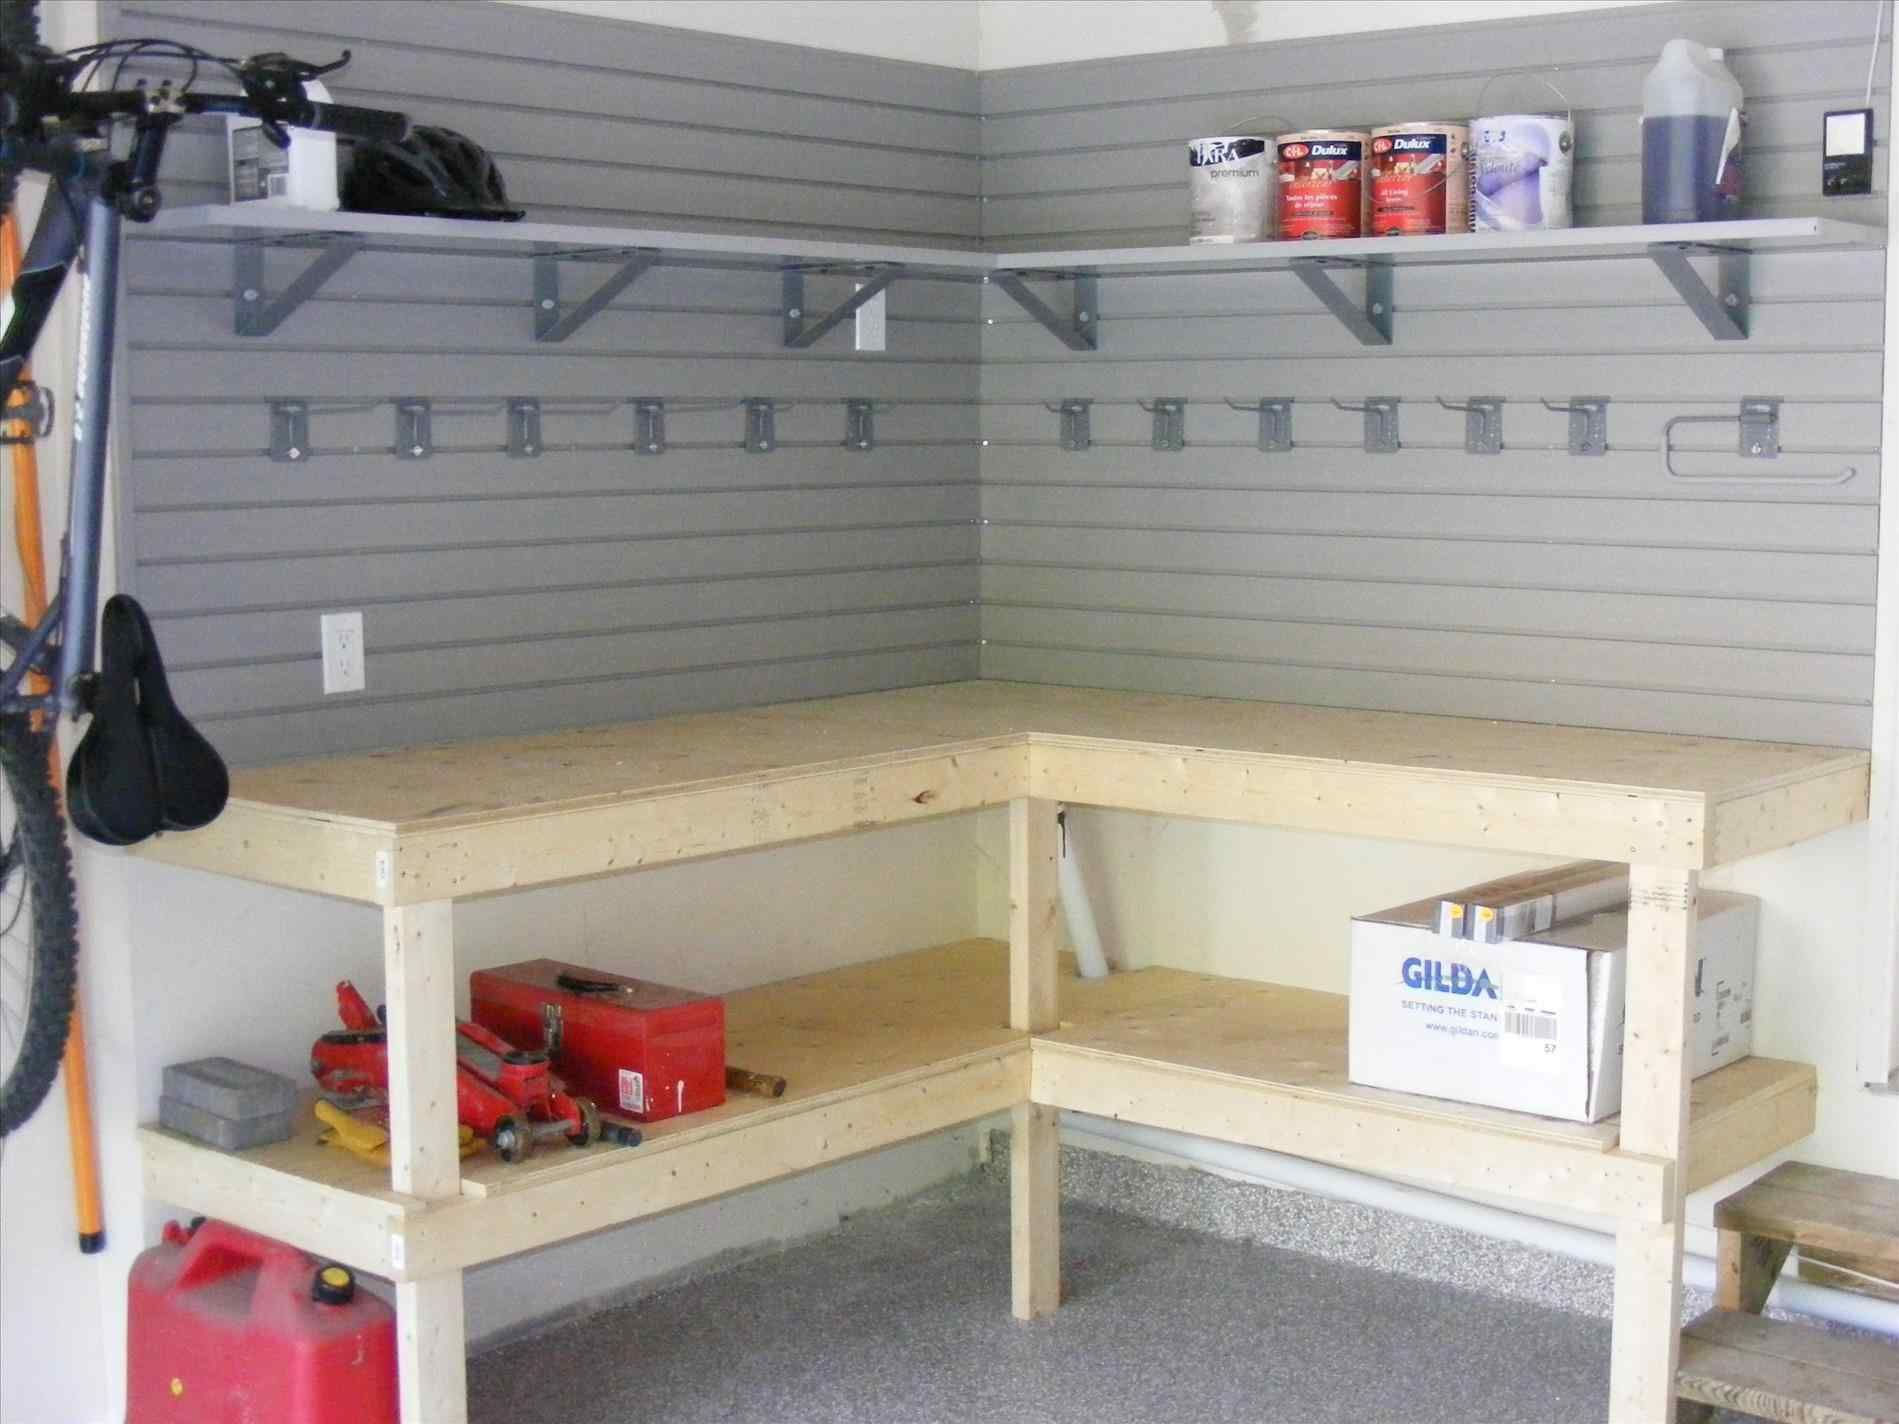 Building A Corner Workbench Google Search Garage Workbench Plans Garage Shelving Diy Garage Shelves